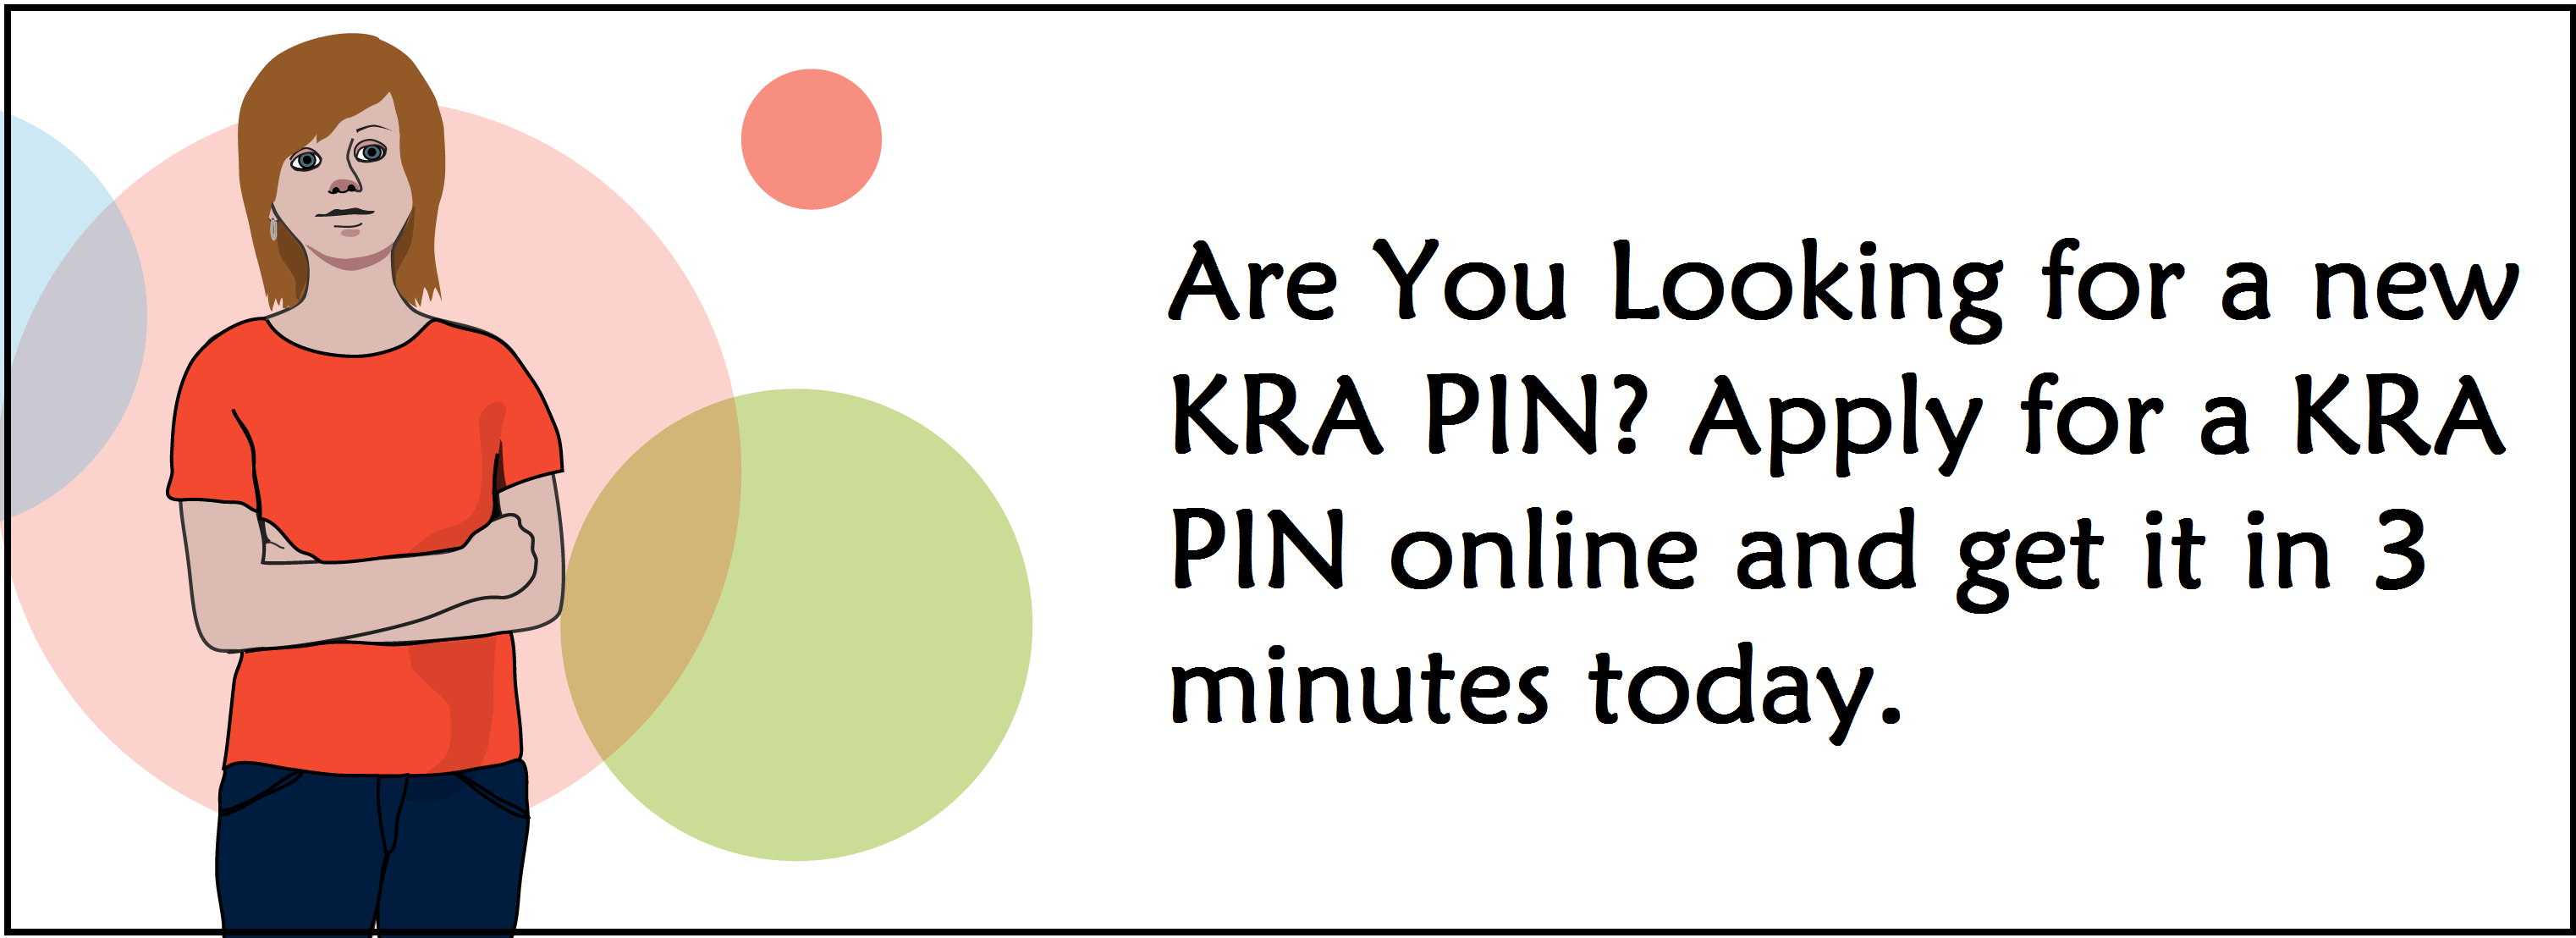 KRA PIN Registration in Kenya